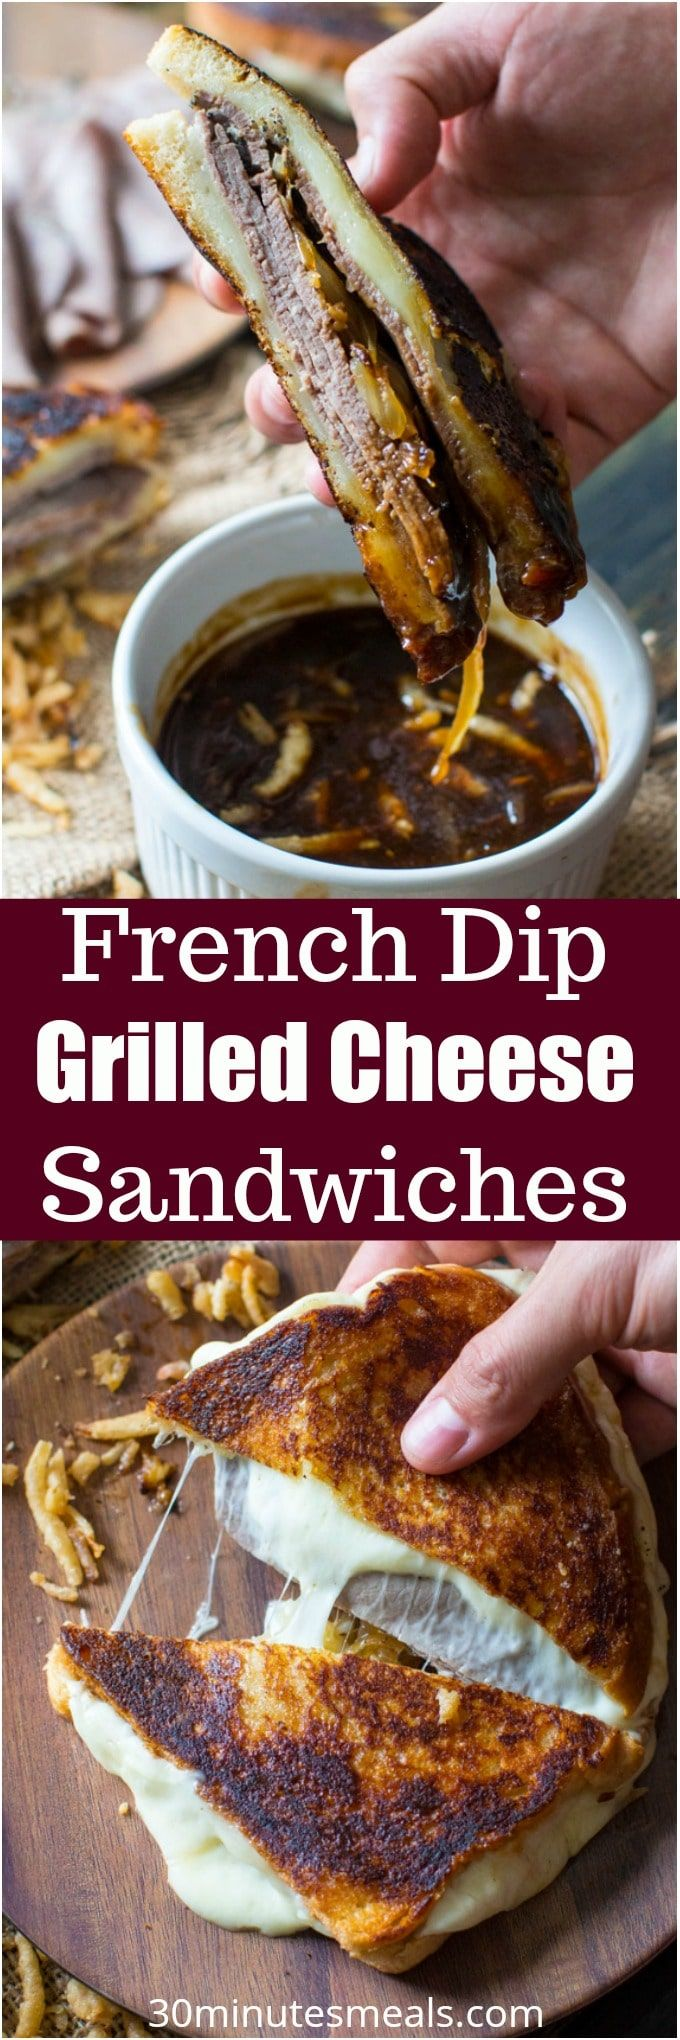 French Dip Grilled Cheese Sandwich is perfect for dinner, parties or game nights! Serve with the dipping sauce on the side for the ultimate, amazing flavor! #grilledcheese #sandwich #frenchdip